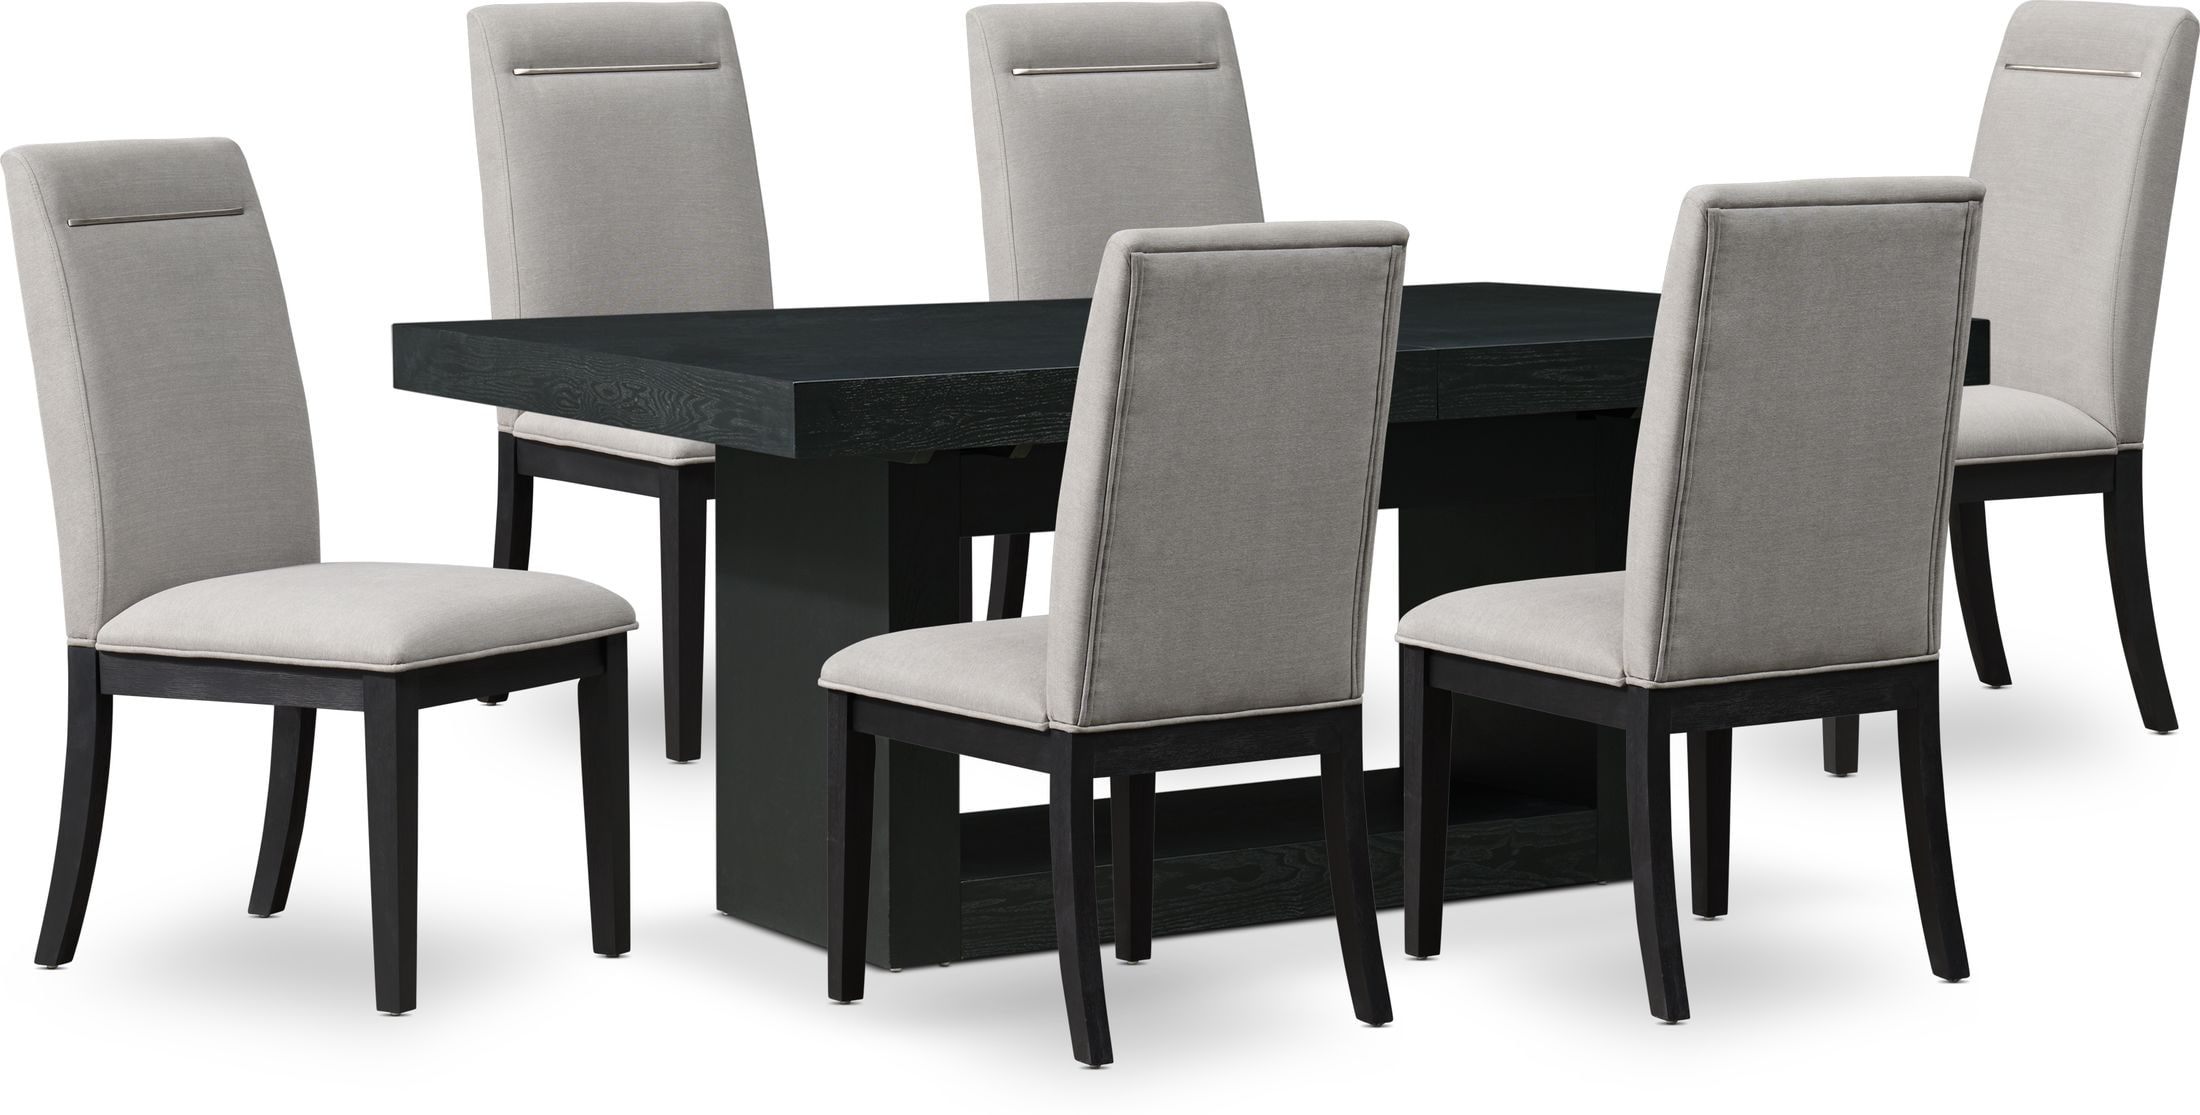 Dining Room Furniture - Banks Dining Table with 6 Chairs